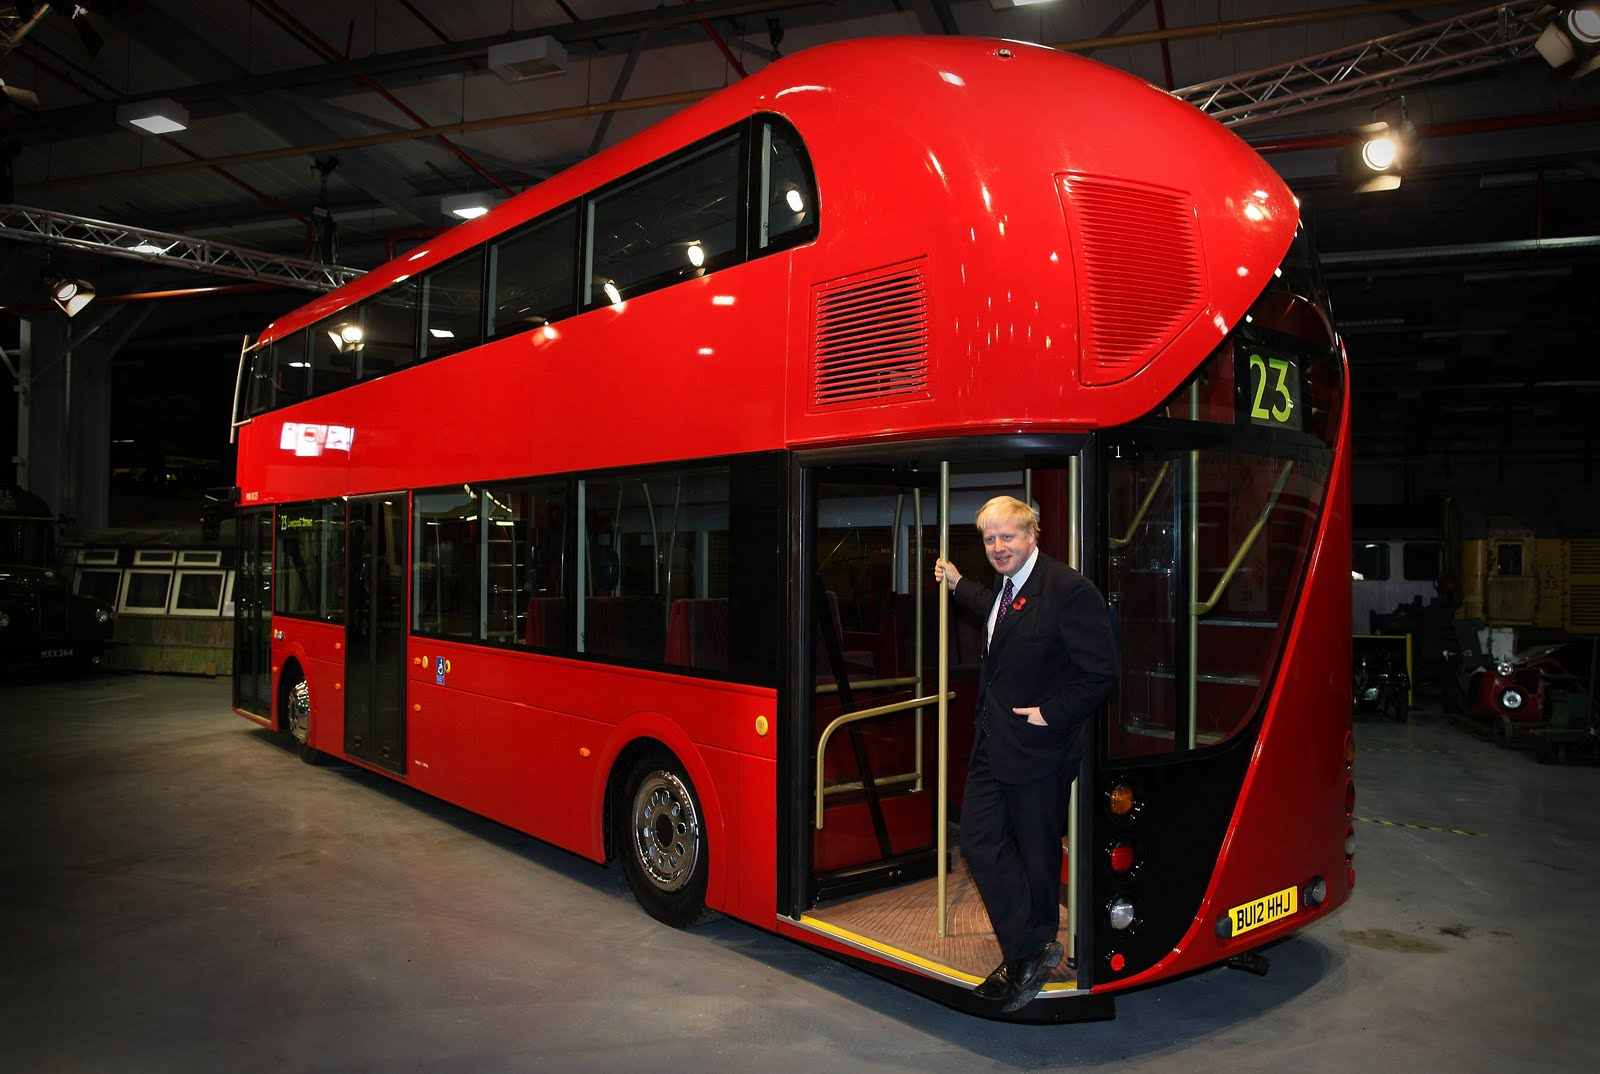 Looks Like A Car London Introduces Its New Double Decker